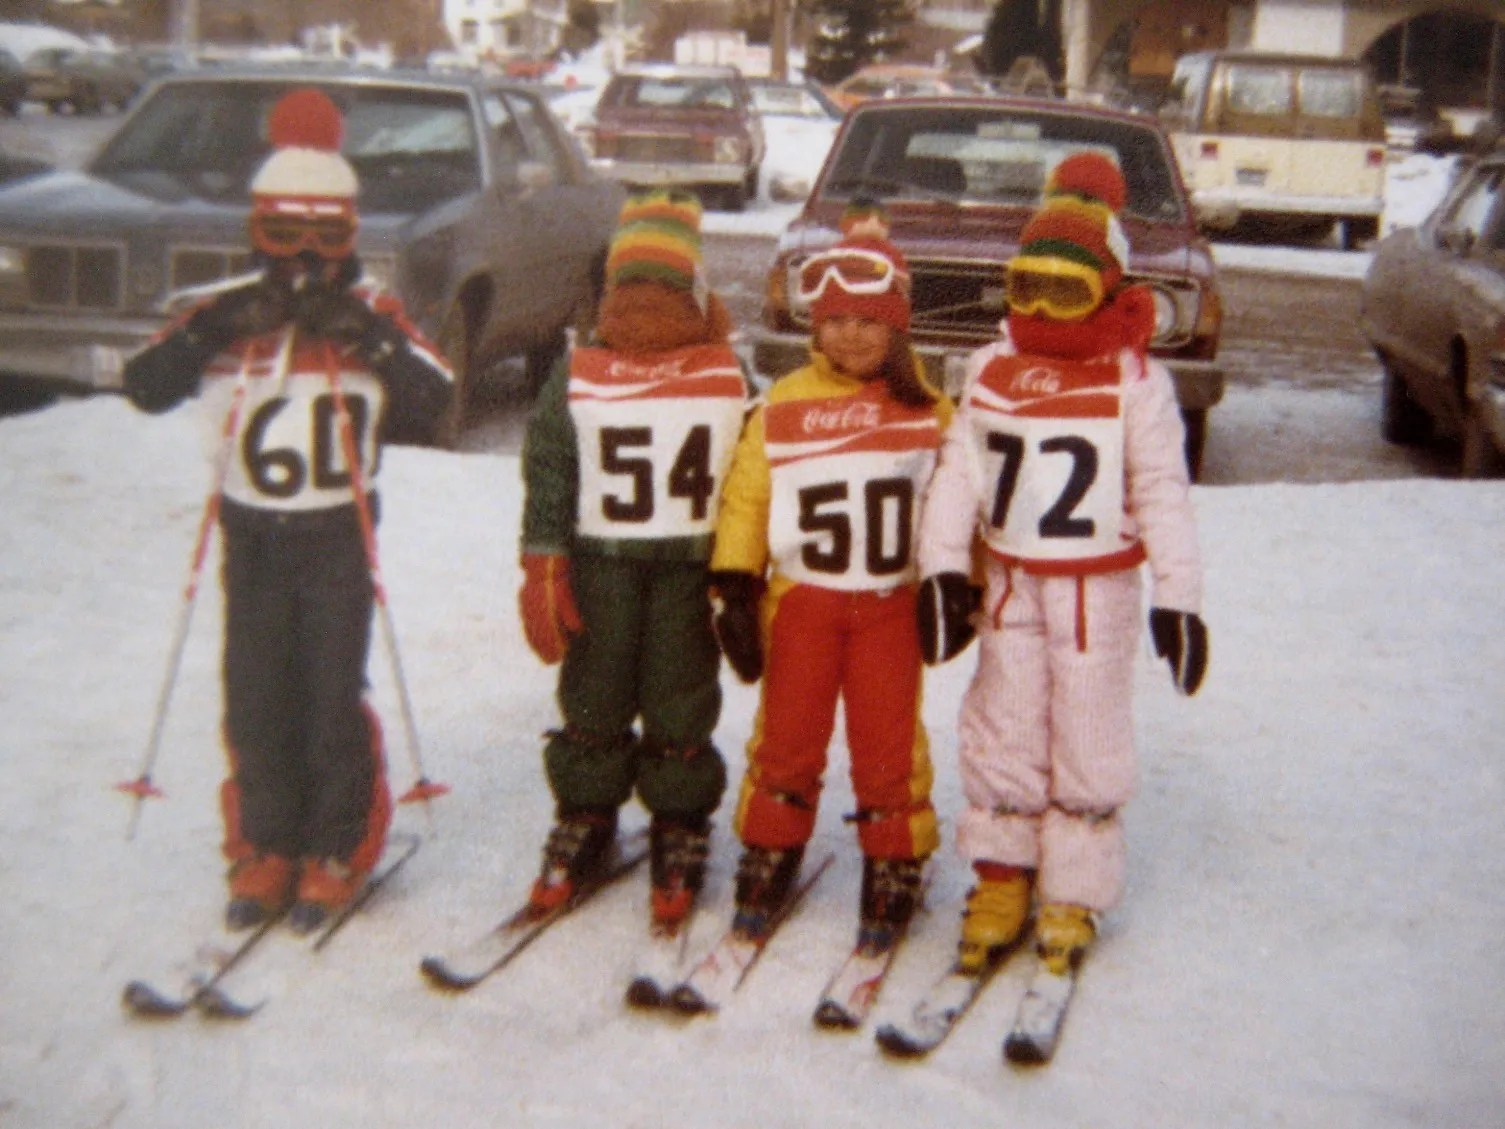 Vintage Skiing Kids 1978